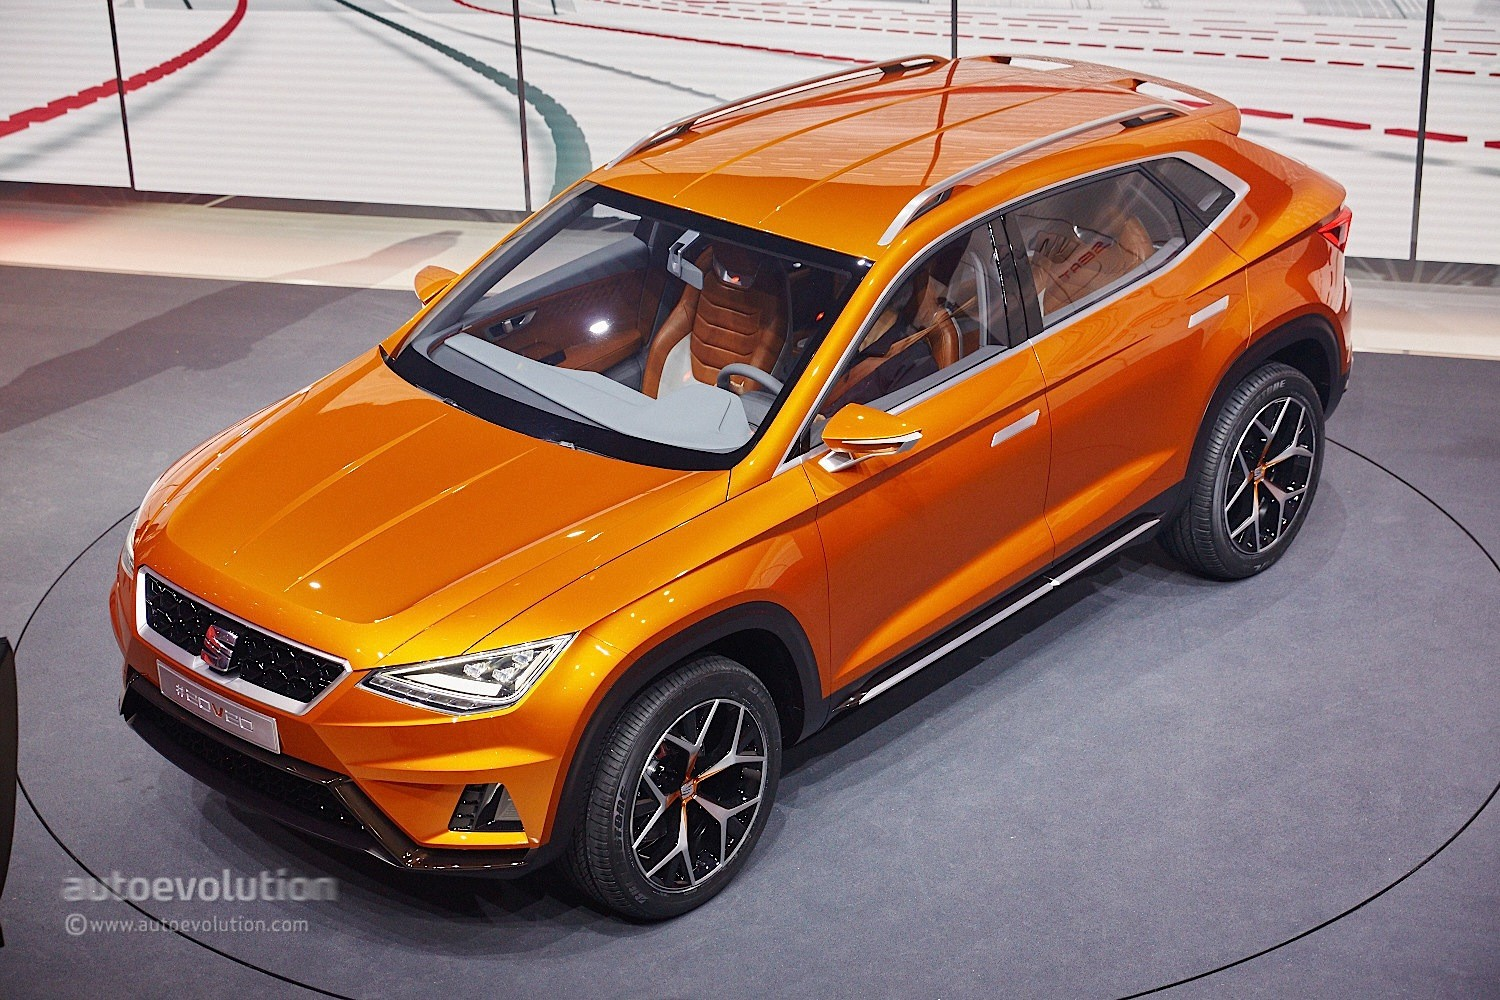 seat-prostyle-suv-will-be-the-first-of-4-new-models-coming-until-2017_2